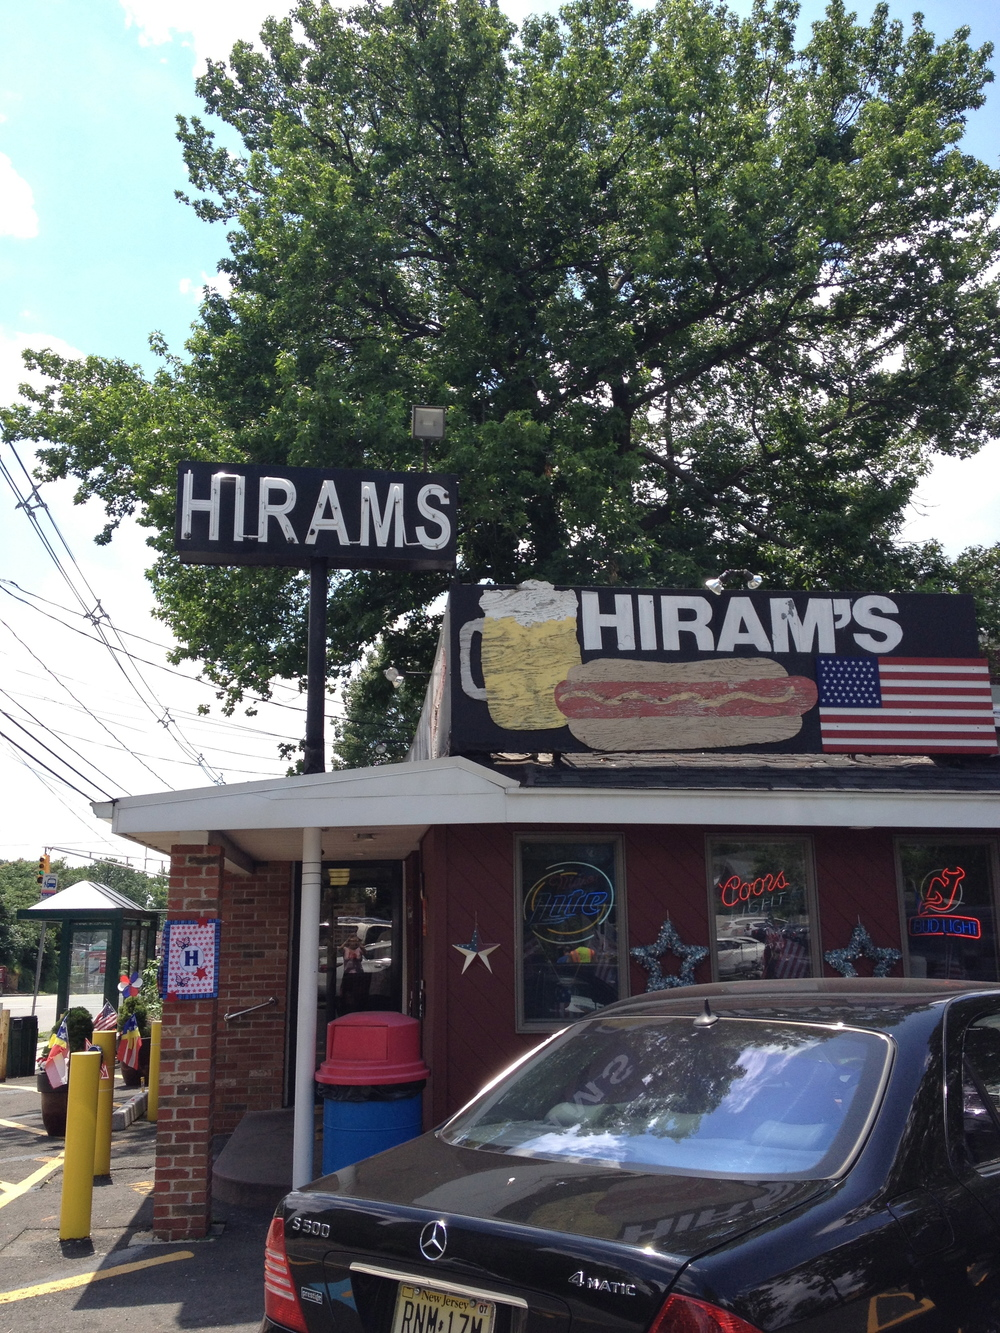 Hiram's Roadstand in Fort Lee, NJ - a tubular meat institution.